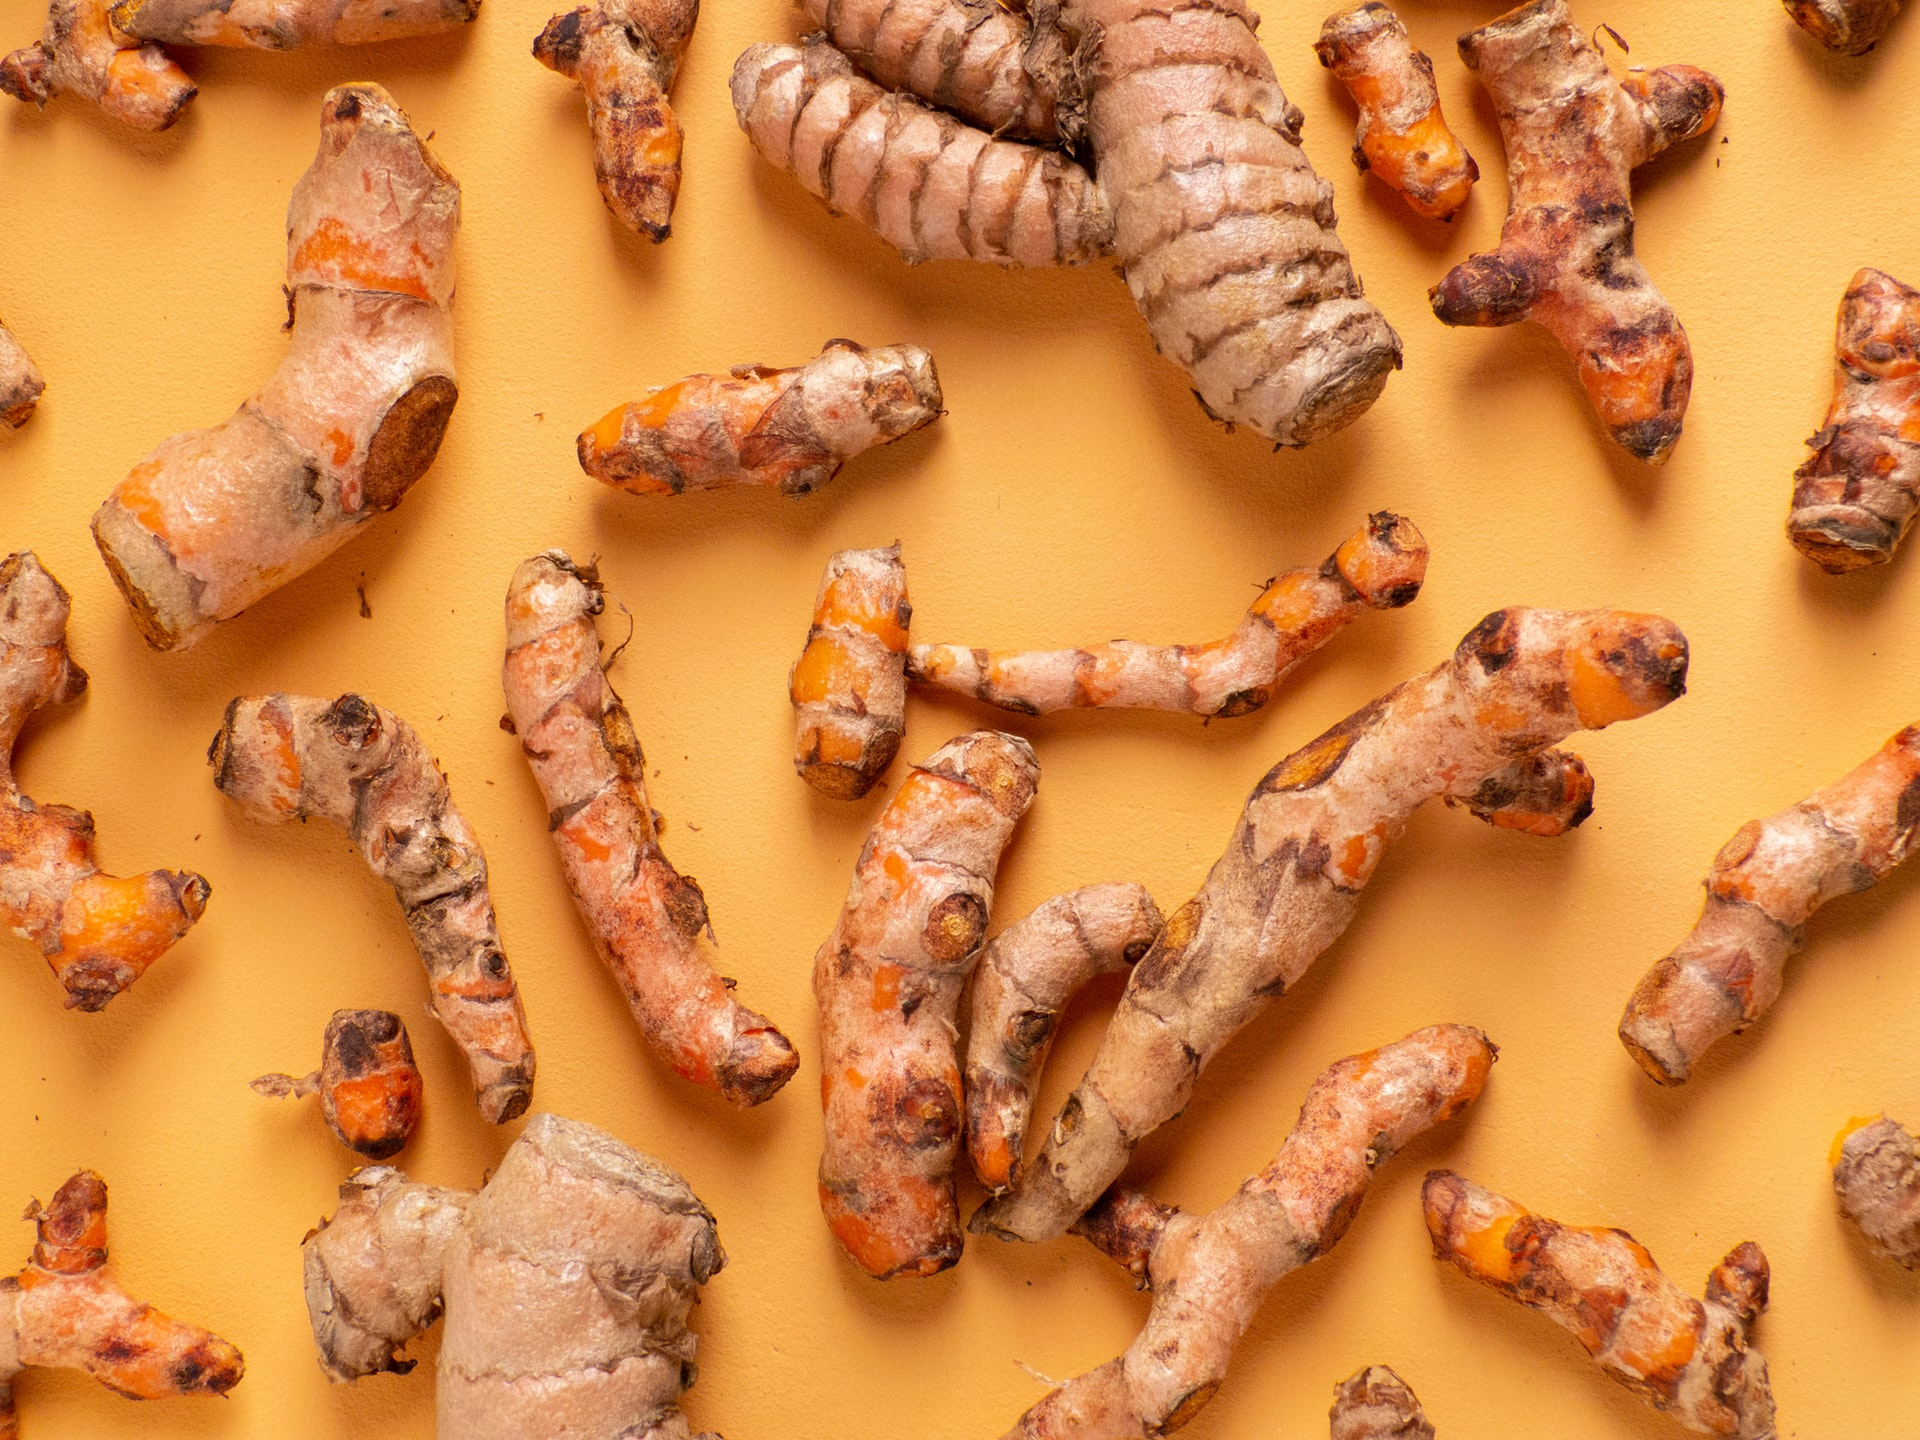 Top 5 Inflammation Fighting Foods - turmeric